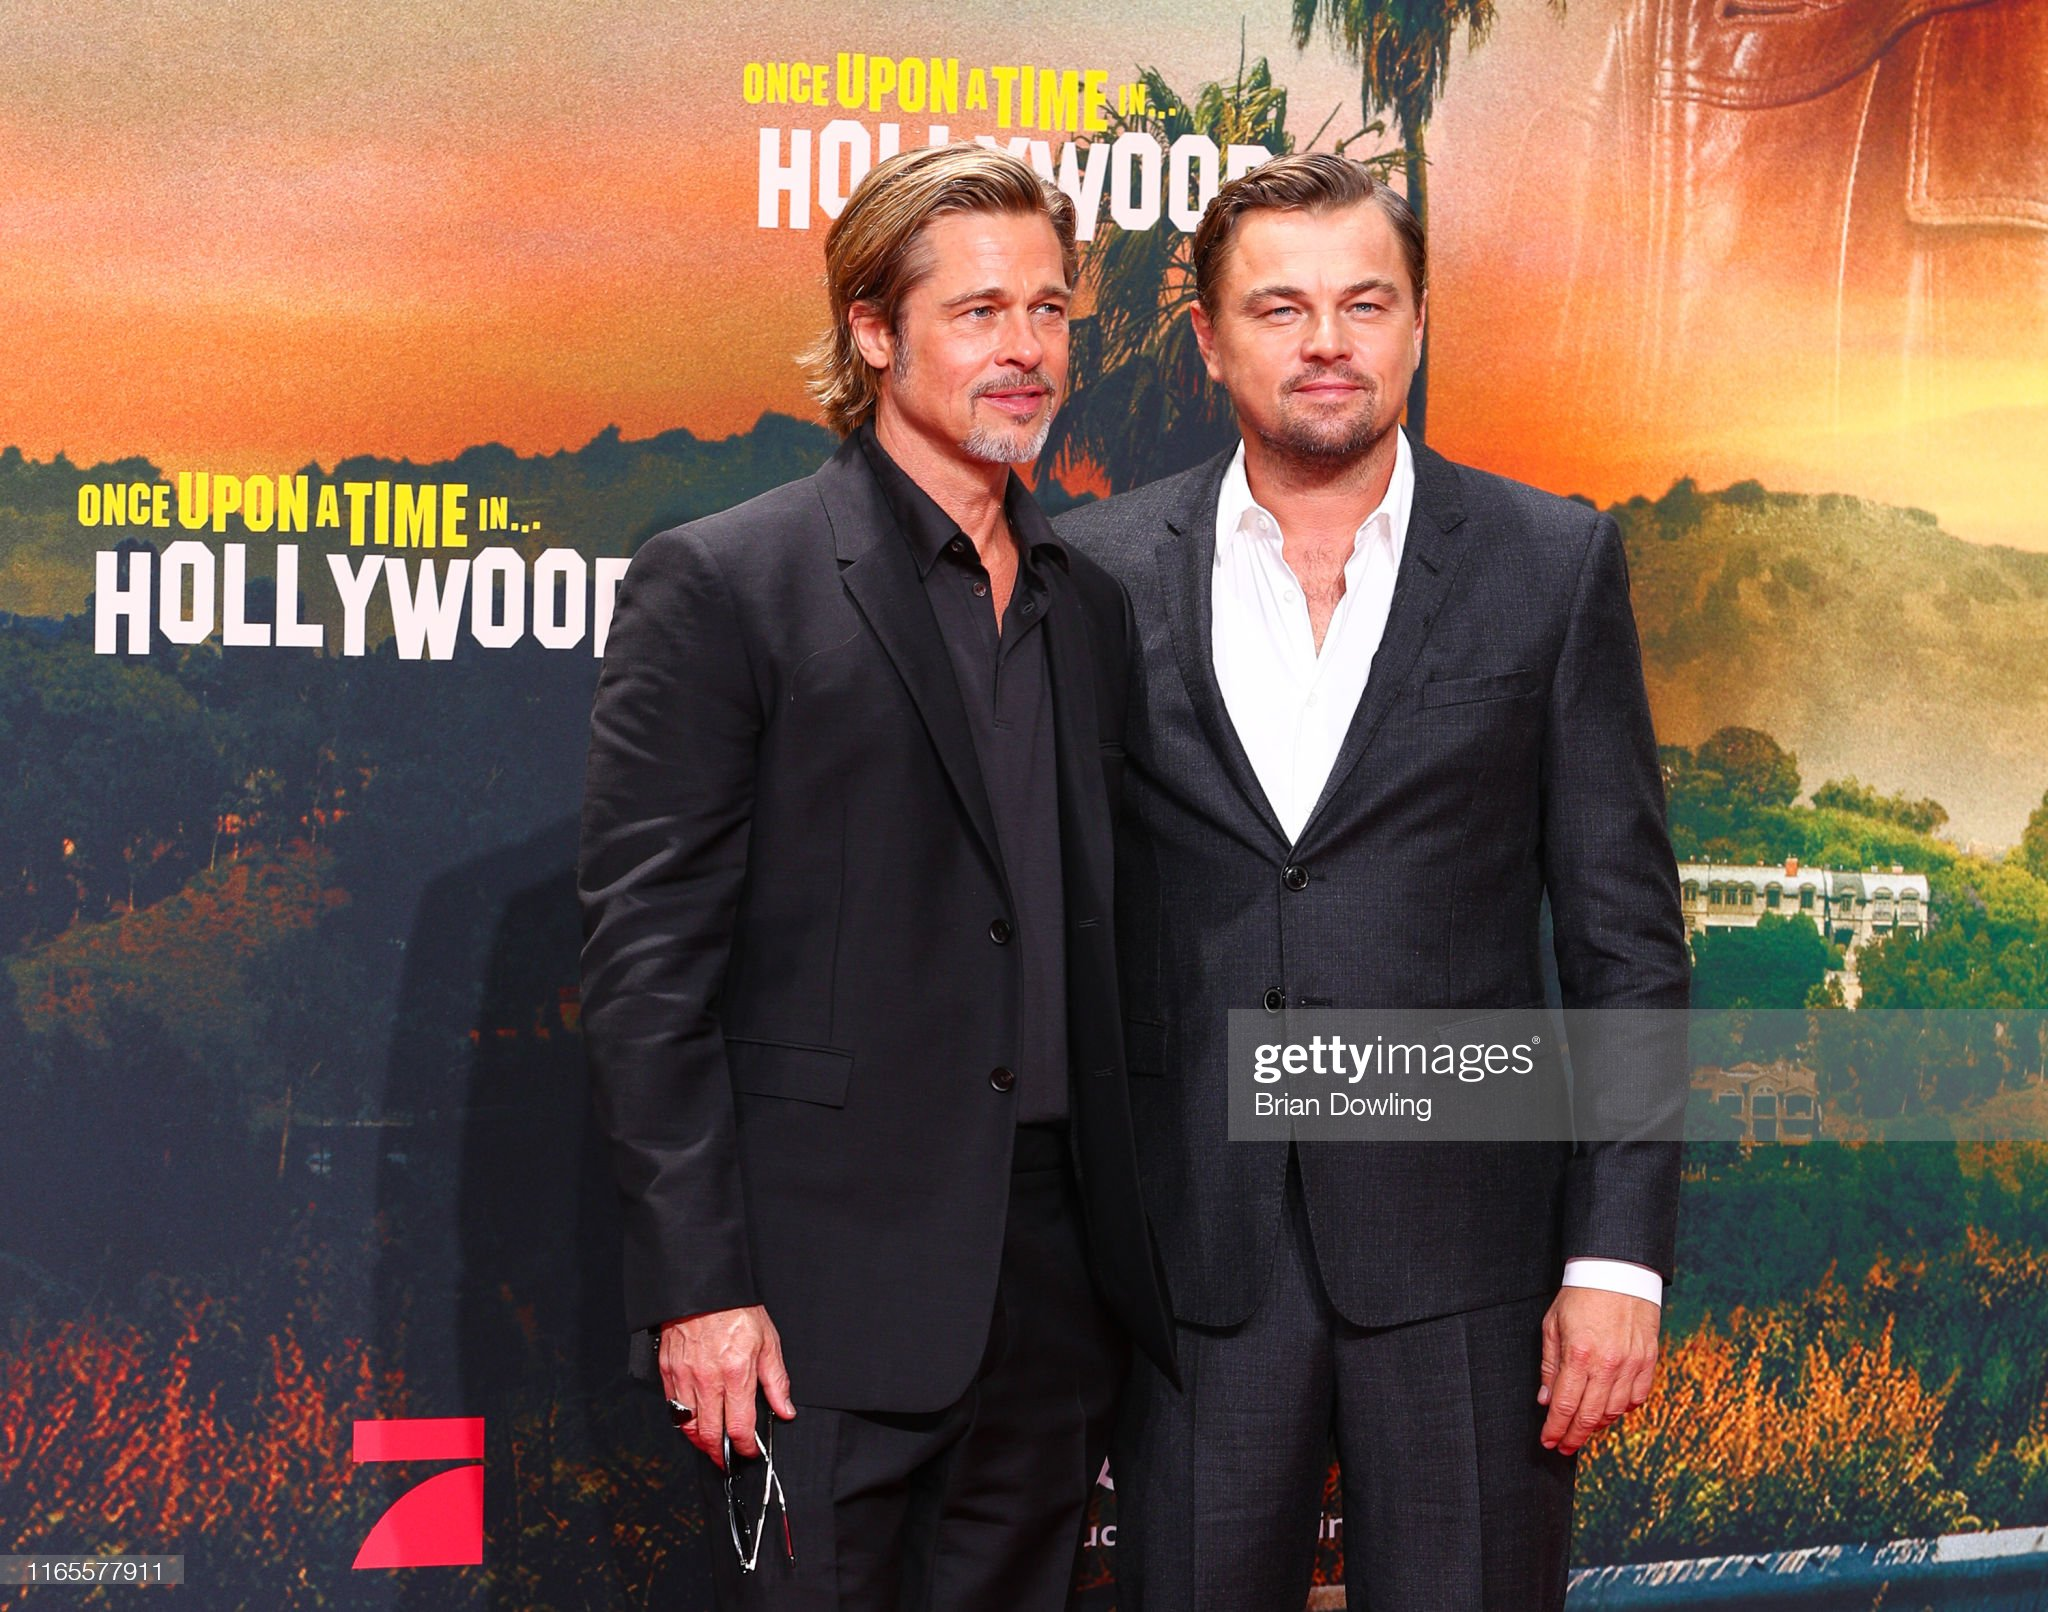 ¿Cuánto mide Brad Pitt? - Altura - Real height - Página 3 Brad-pitt-and-leonardo-dicaprio-attend-the-premiere-of-once-upon-a-picture-id1165577911?s=2048x2048